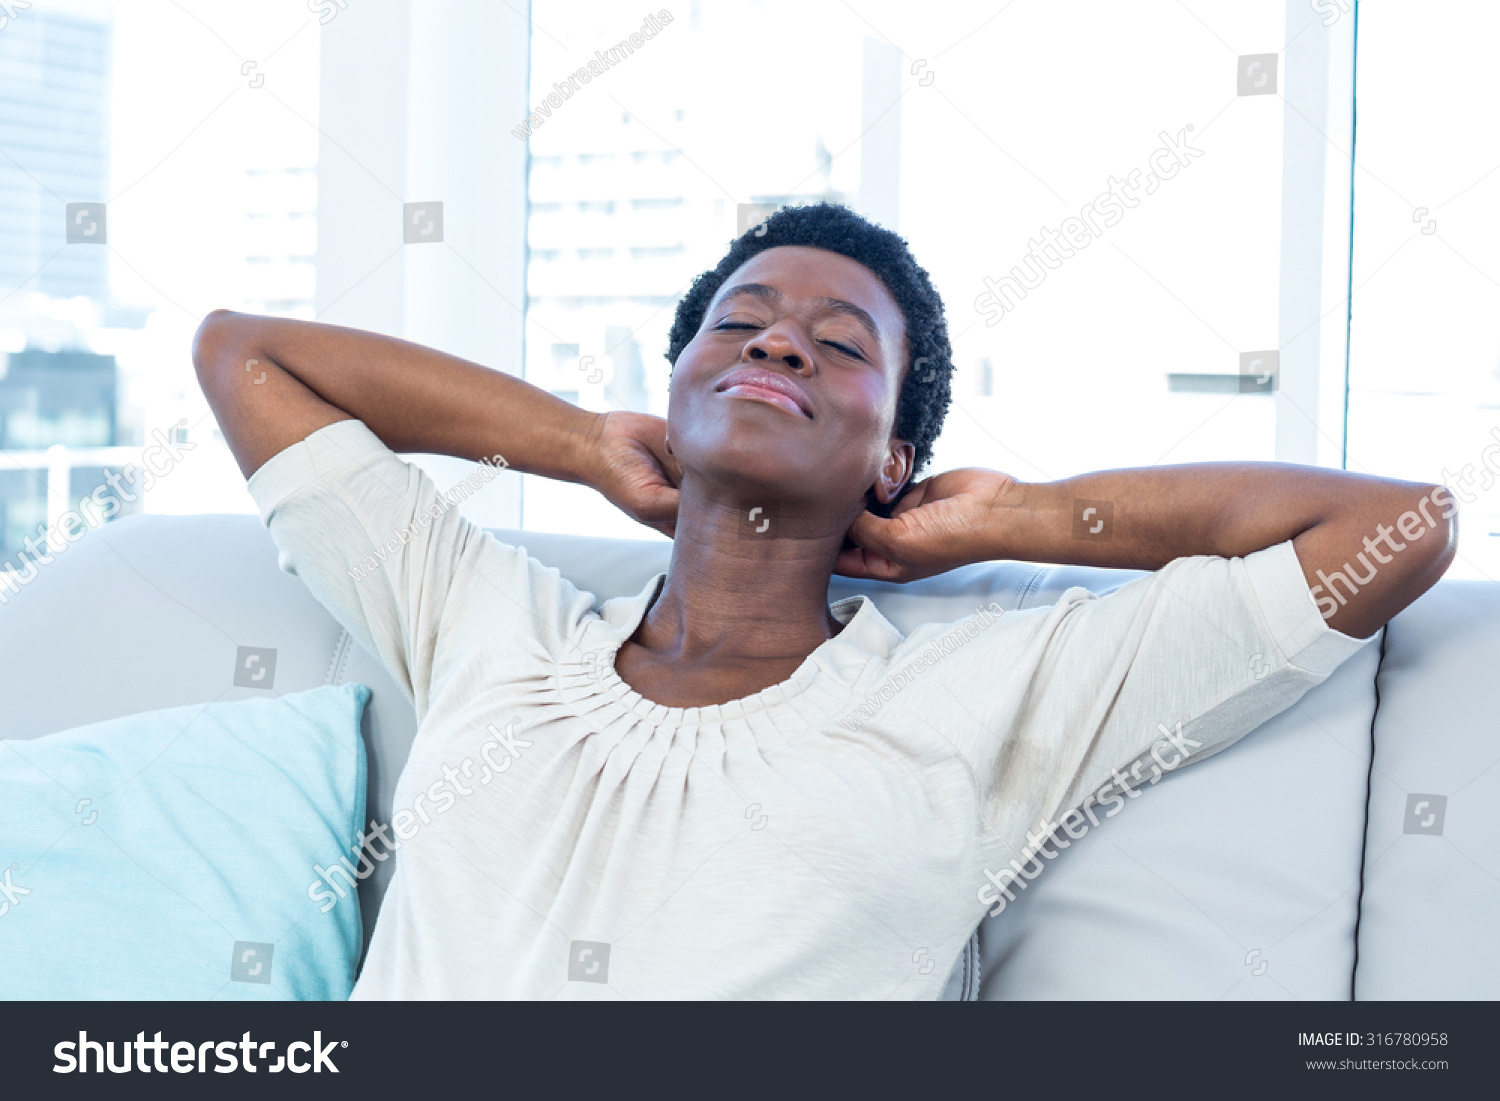 High Angle View Woman Relaxing Hands Stock Photo 316780958 ...  High Angle View...